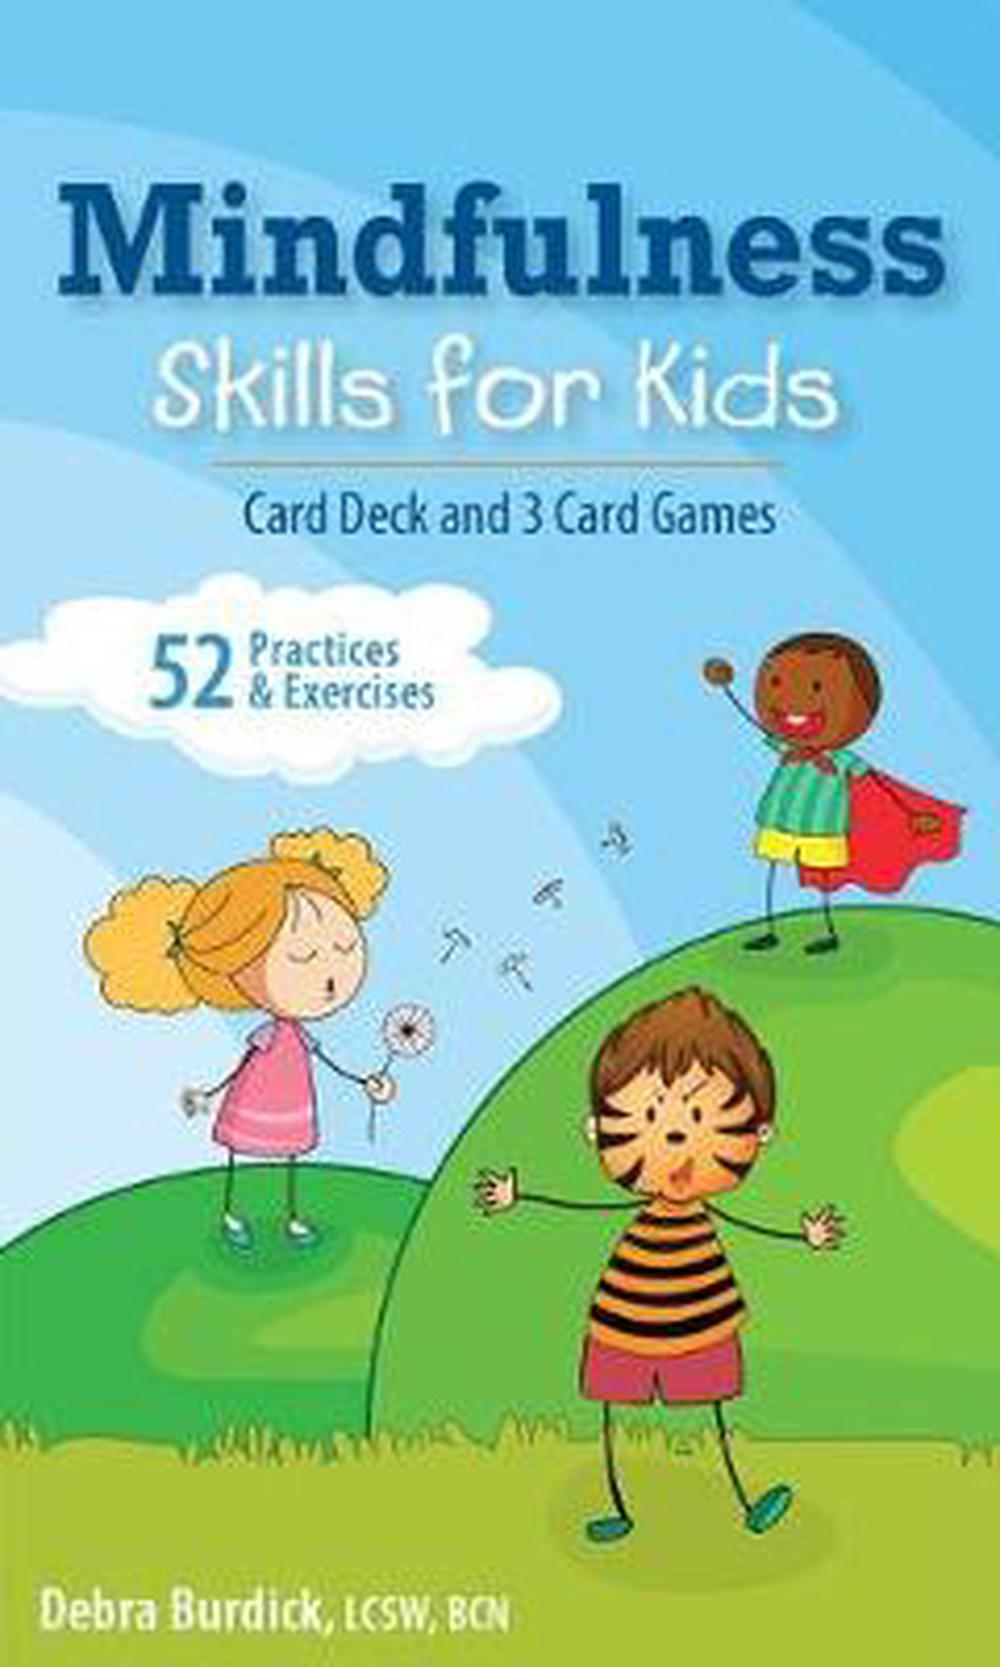 Mindfulness Skills for Kids Card Deck and 3 Card Games by Debra Burdick Lcsw, ISBN: 9781683731054